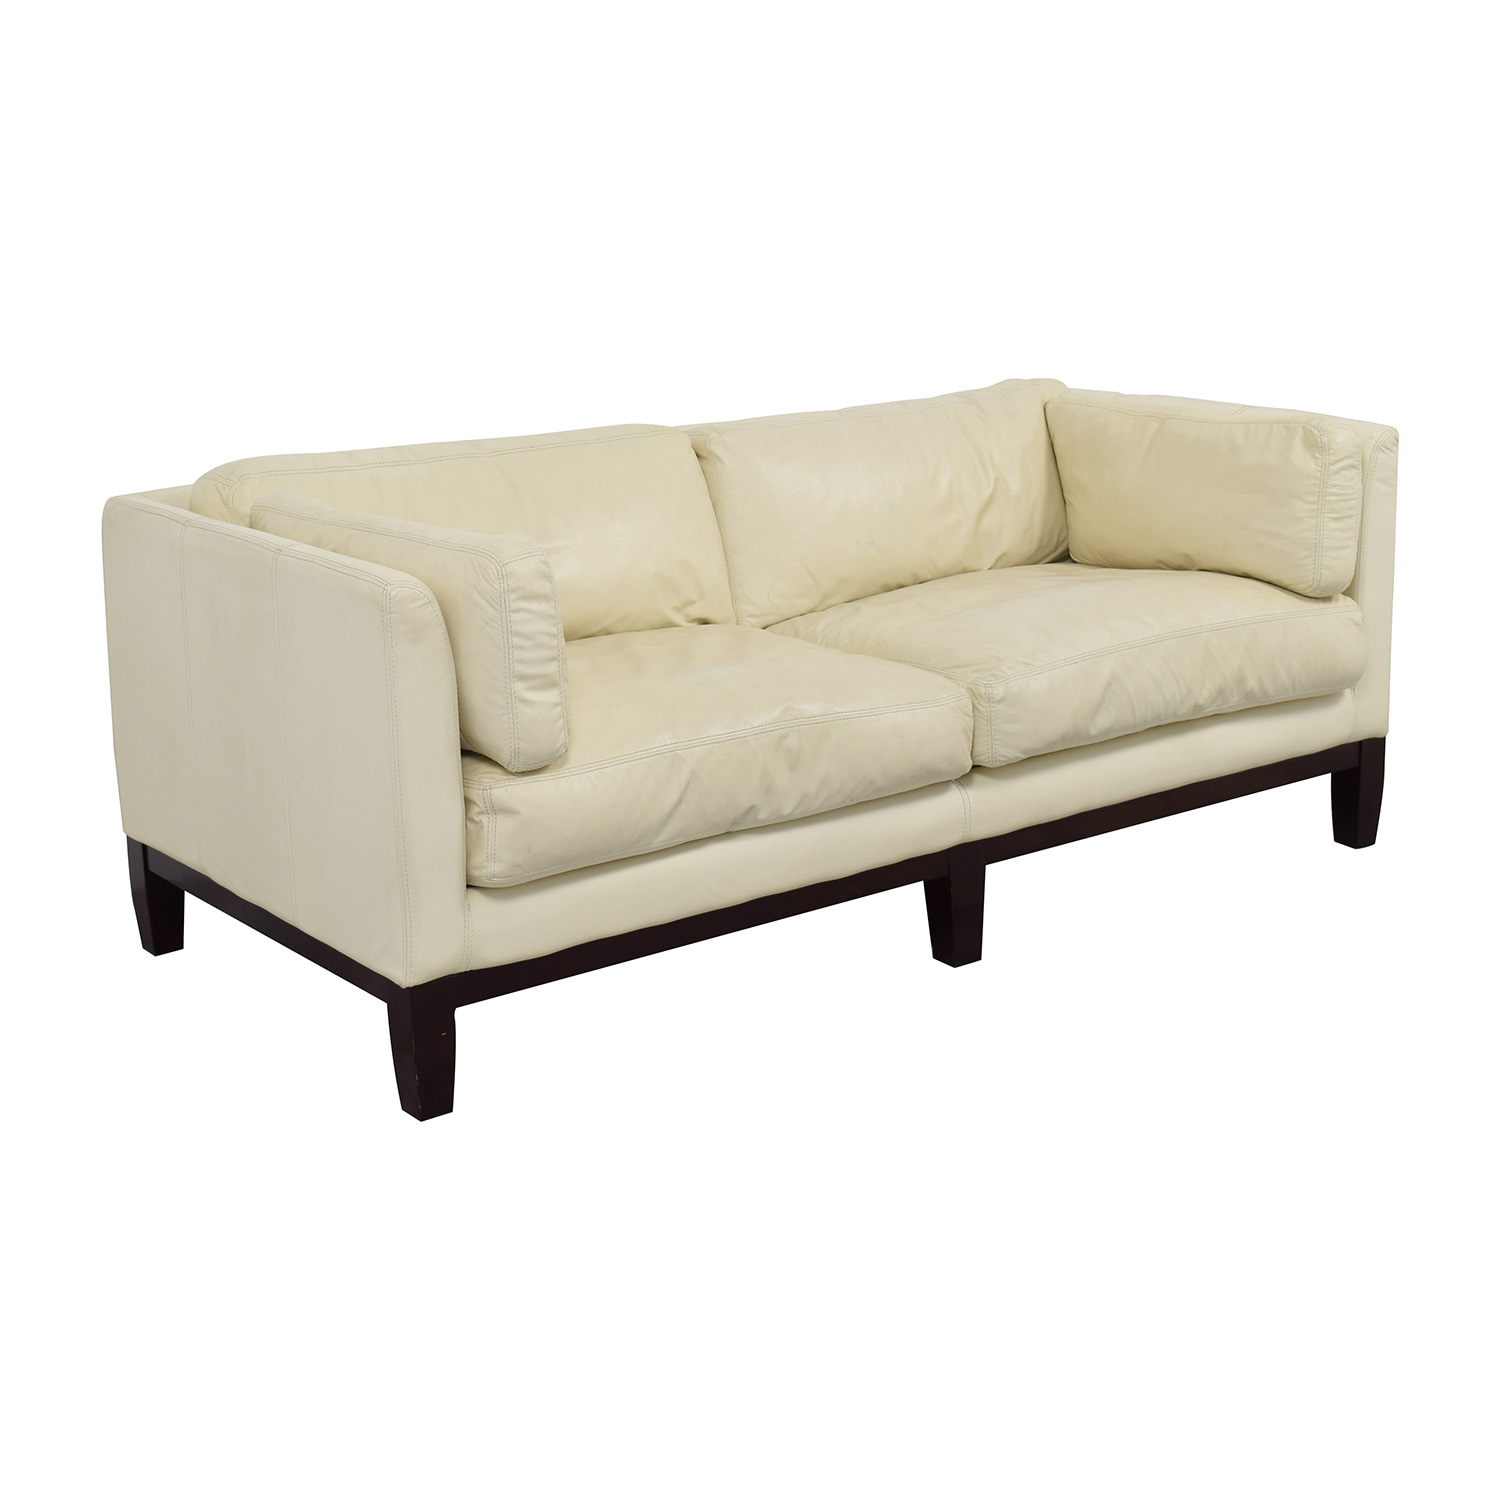 secondhand leather sofas wood frame sofa manufacturers 2nd hand white brokeasshome